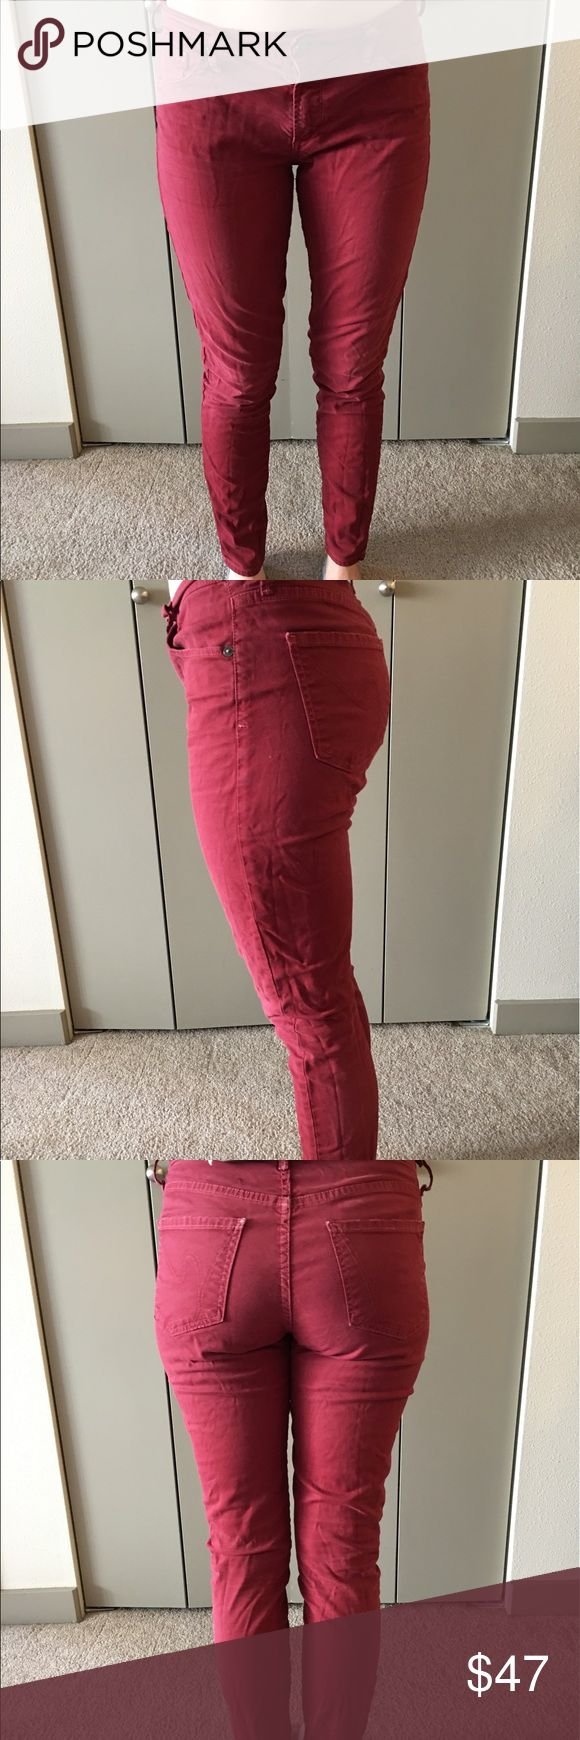 Citizens of Humanity Maroon Skinny Jeans Size 28. Minimal stretch. No distressing. Good condition. Citizens of Humanity Jeans Skinny